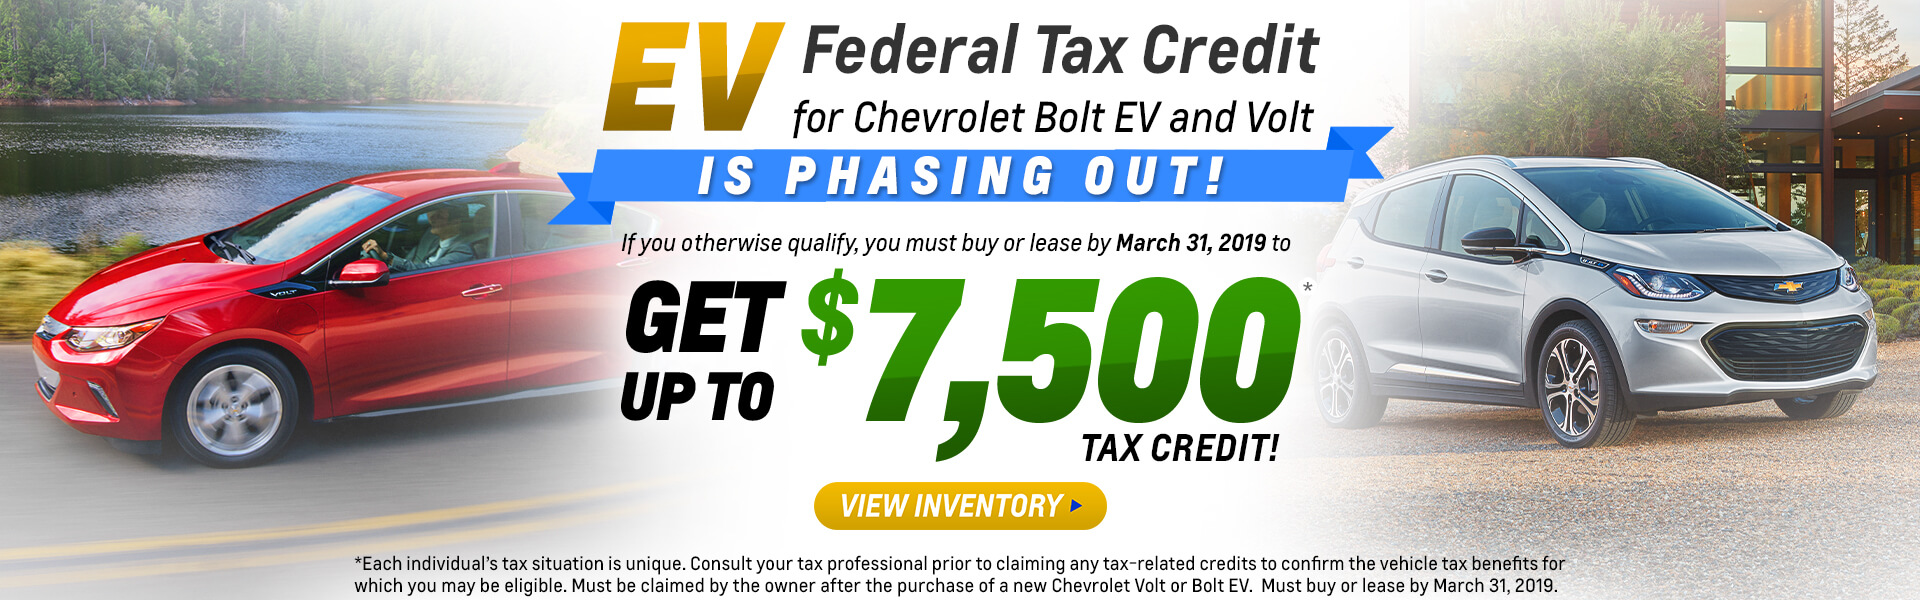 Bolt Volt Tax Credit *Each individual's tax situation is unique. Consult your tax professional prior to claiming any tax-related credits to confirm the vehicle tax benefits for which you may be eligible. Must be claimed by the owner after the purchase of a new Chevrolet Volt or Bolt EV.  Must buy or lease by March 31, 2019